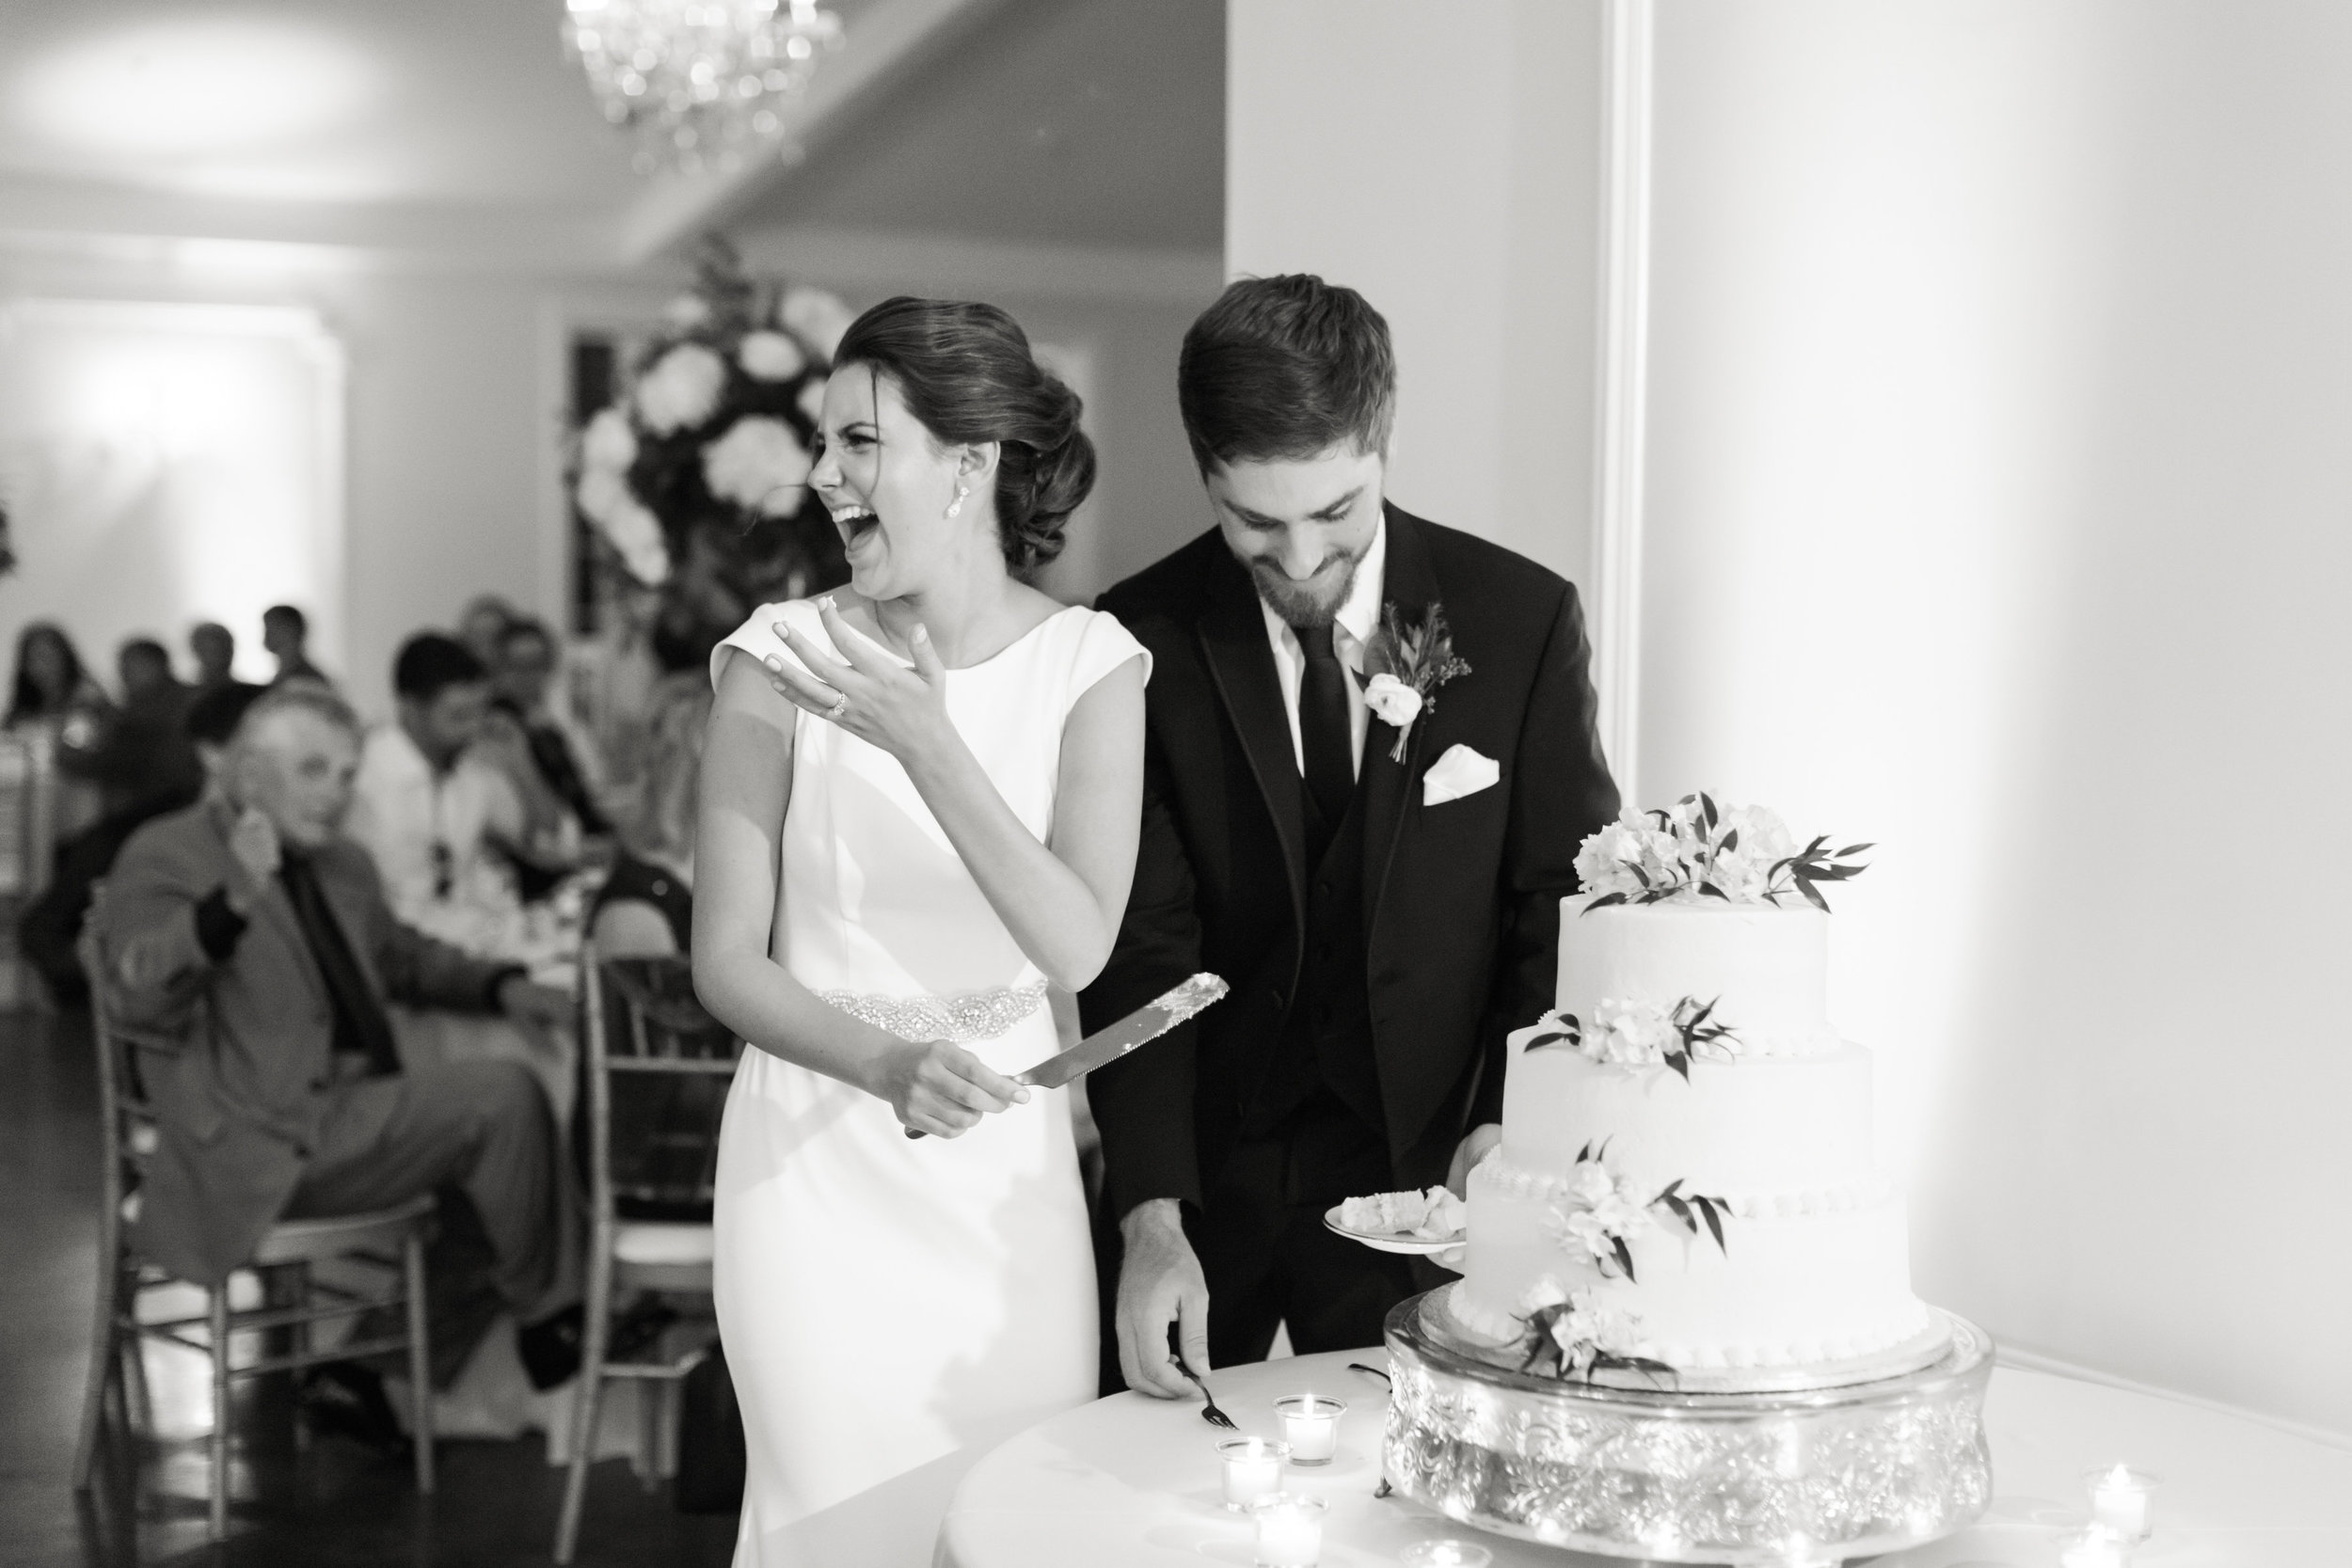 Monzy & Kenny's Wedding | Lauren Galloway Photography-763.jpg